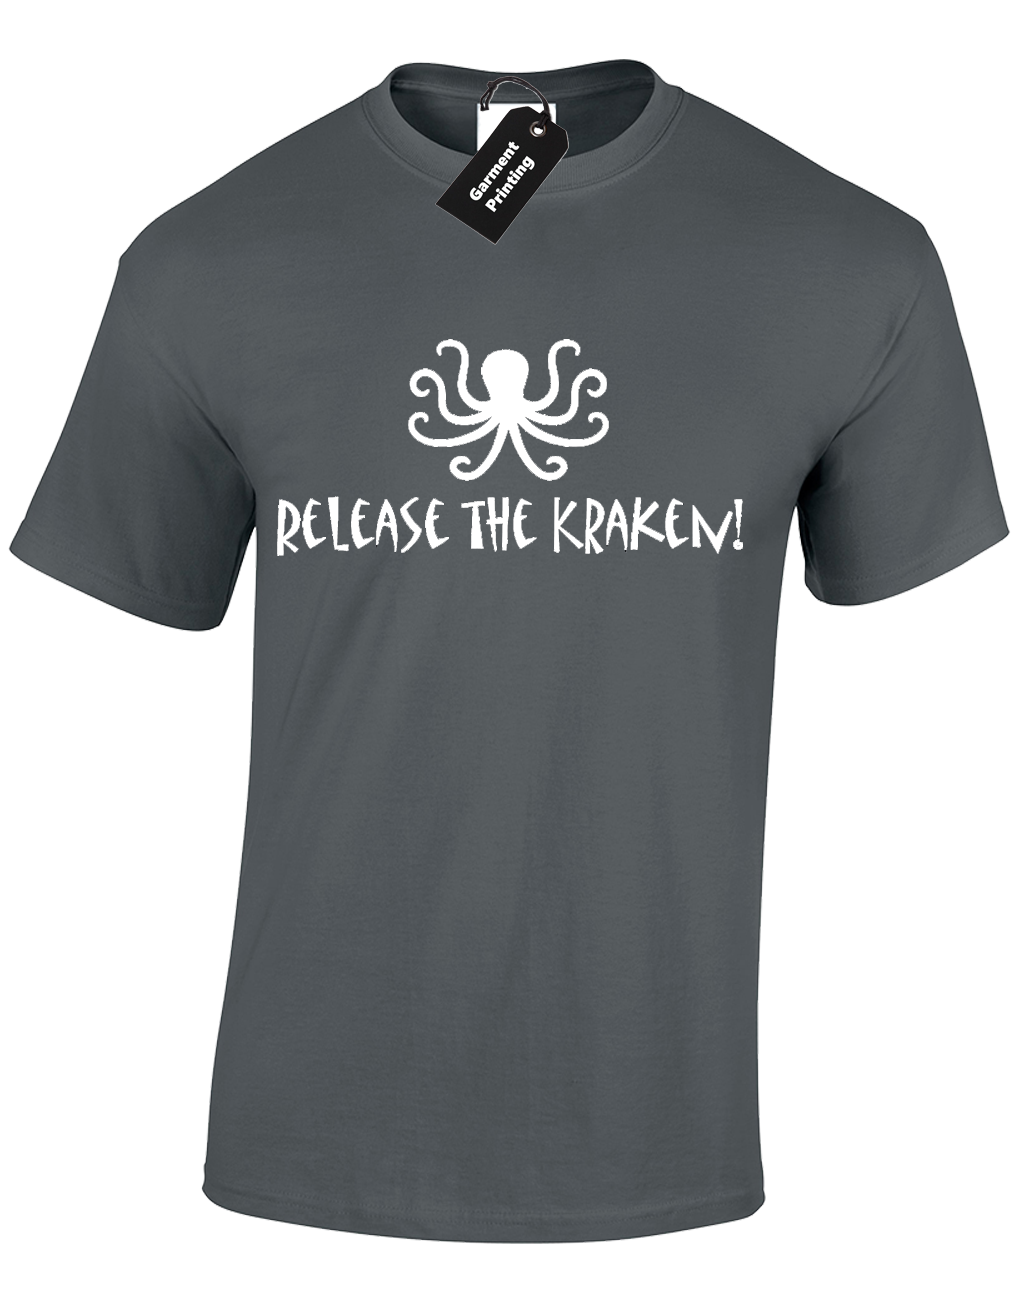 RELEASE THE KRAKEN MENS T SHIRT TITAN MONSTER SQUID OCTOPUS SHIP BOAT SEA Cartoon t shirt men Unisex New Fashion tshirt